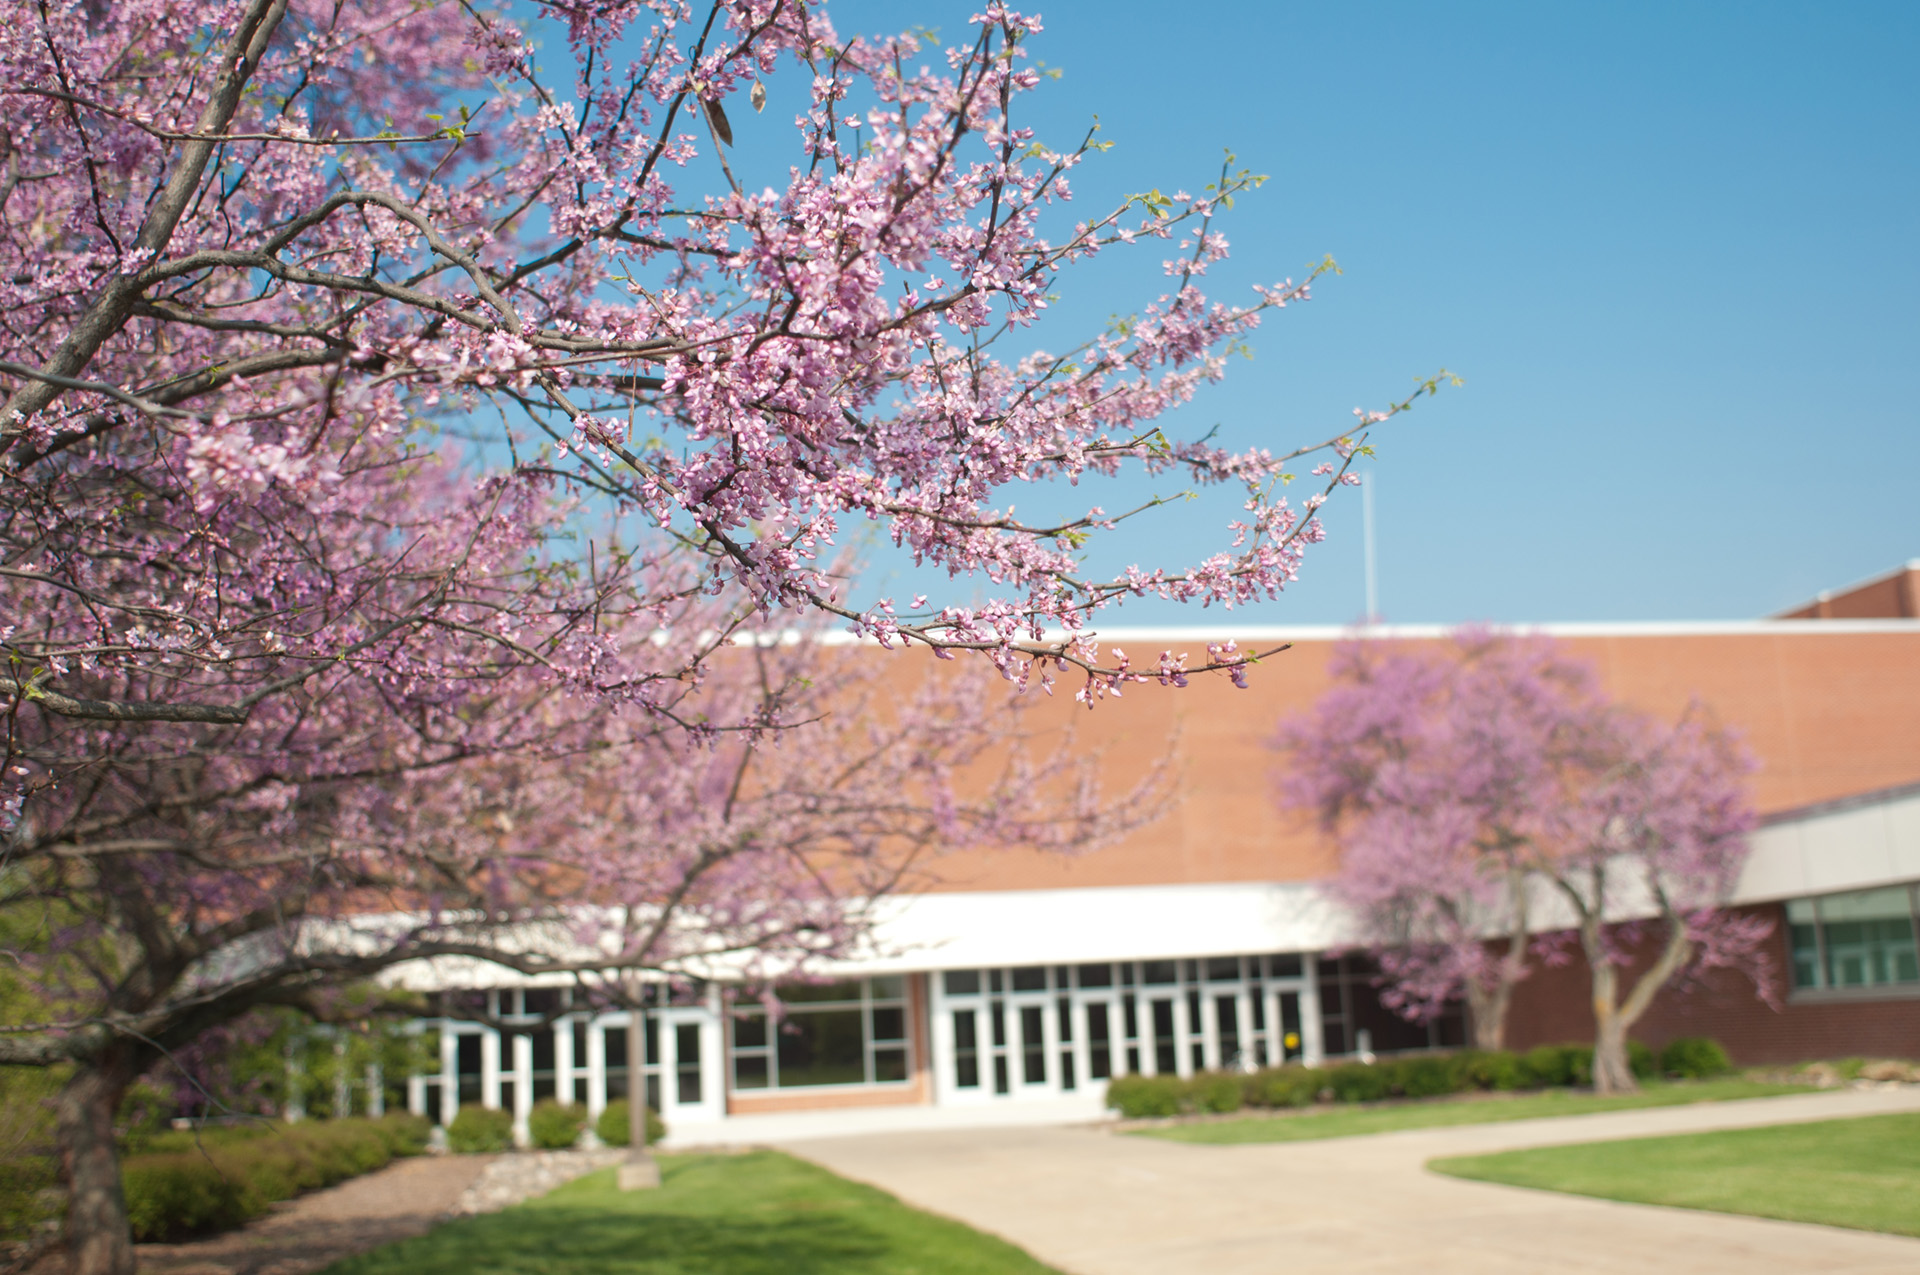 Flowering trees at the Main Campus